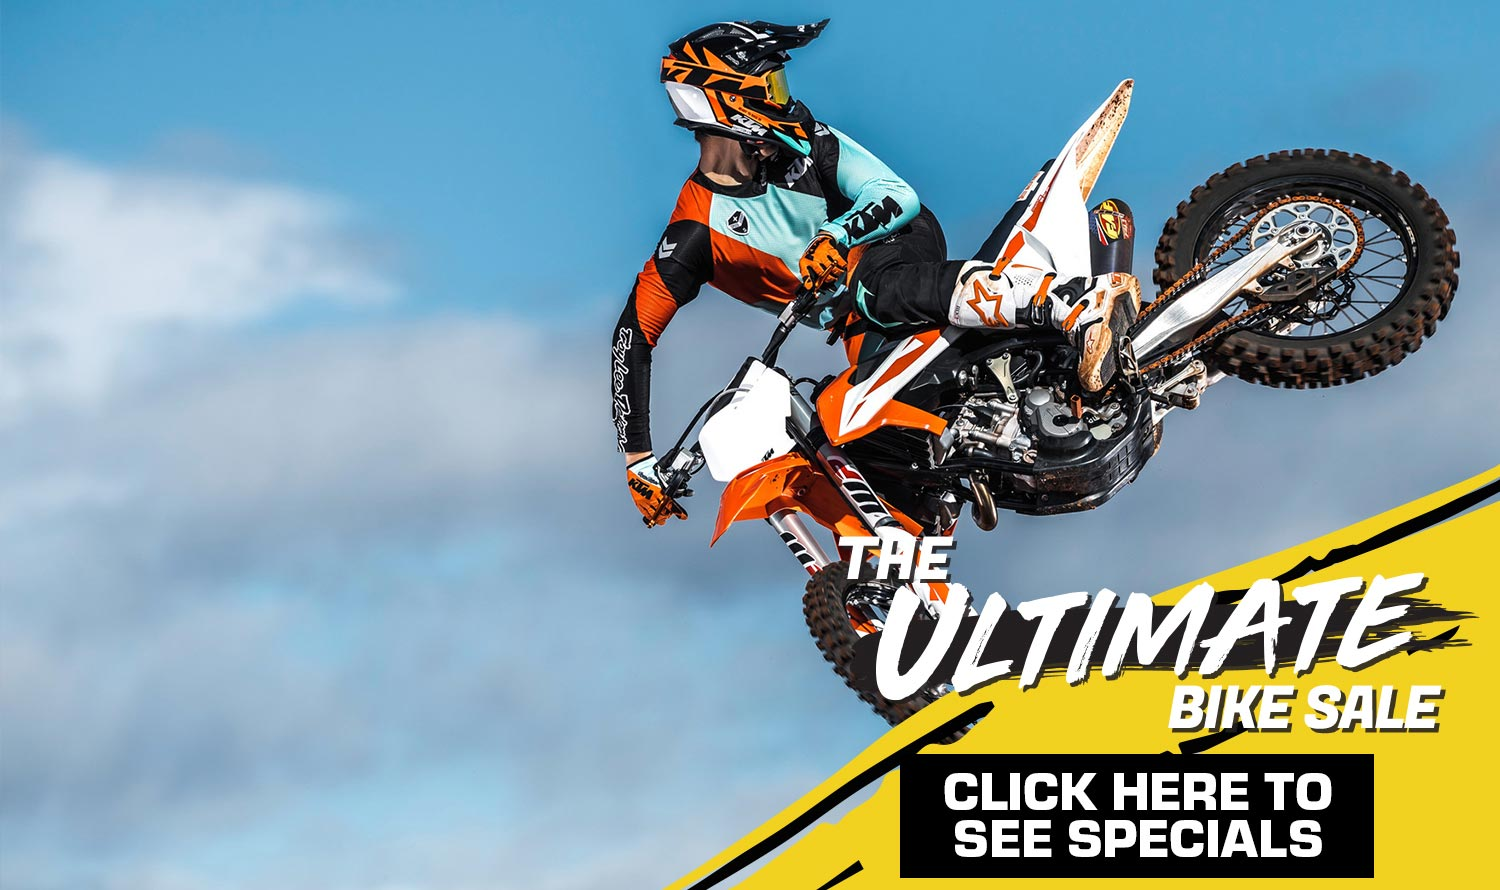 Ultimate-HPB-KTM-Nov18-SM